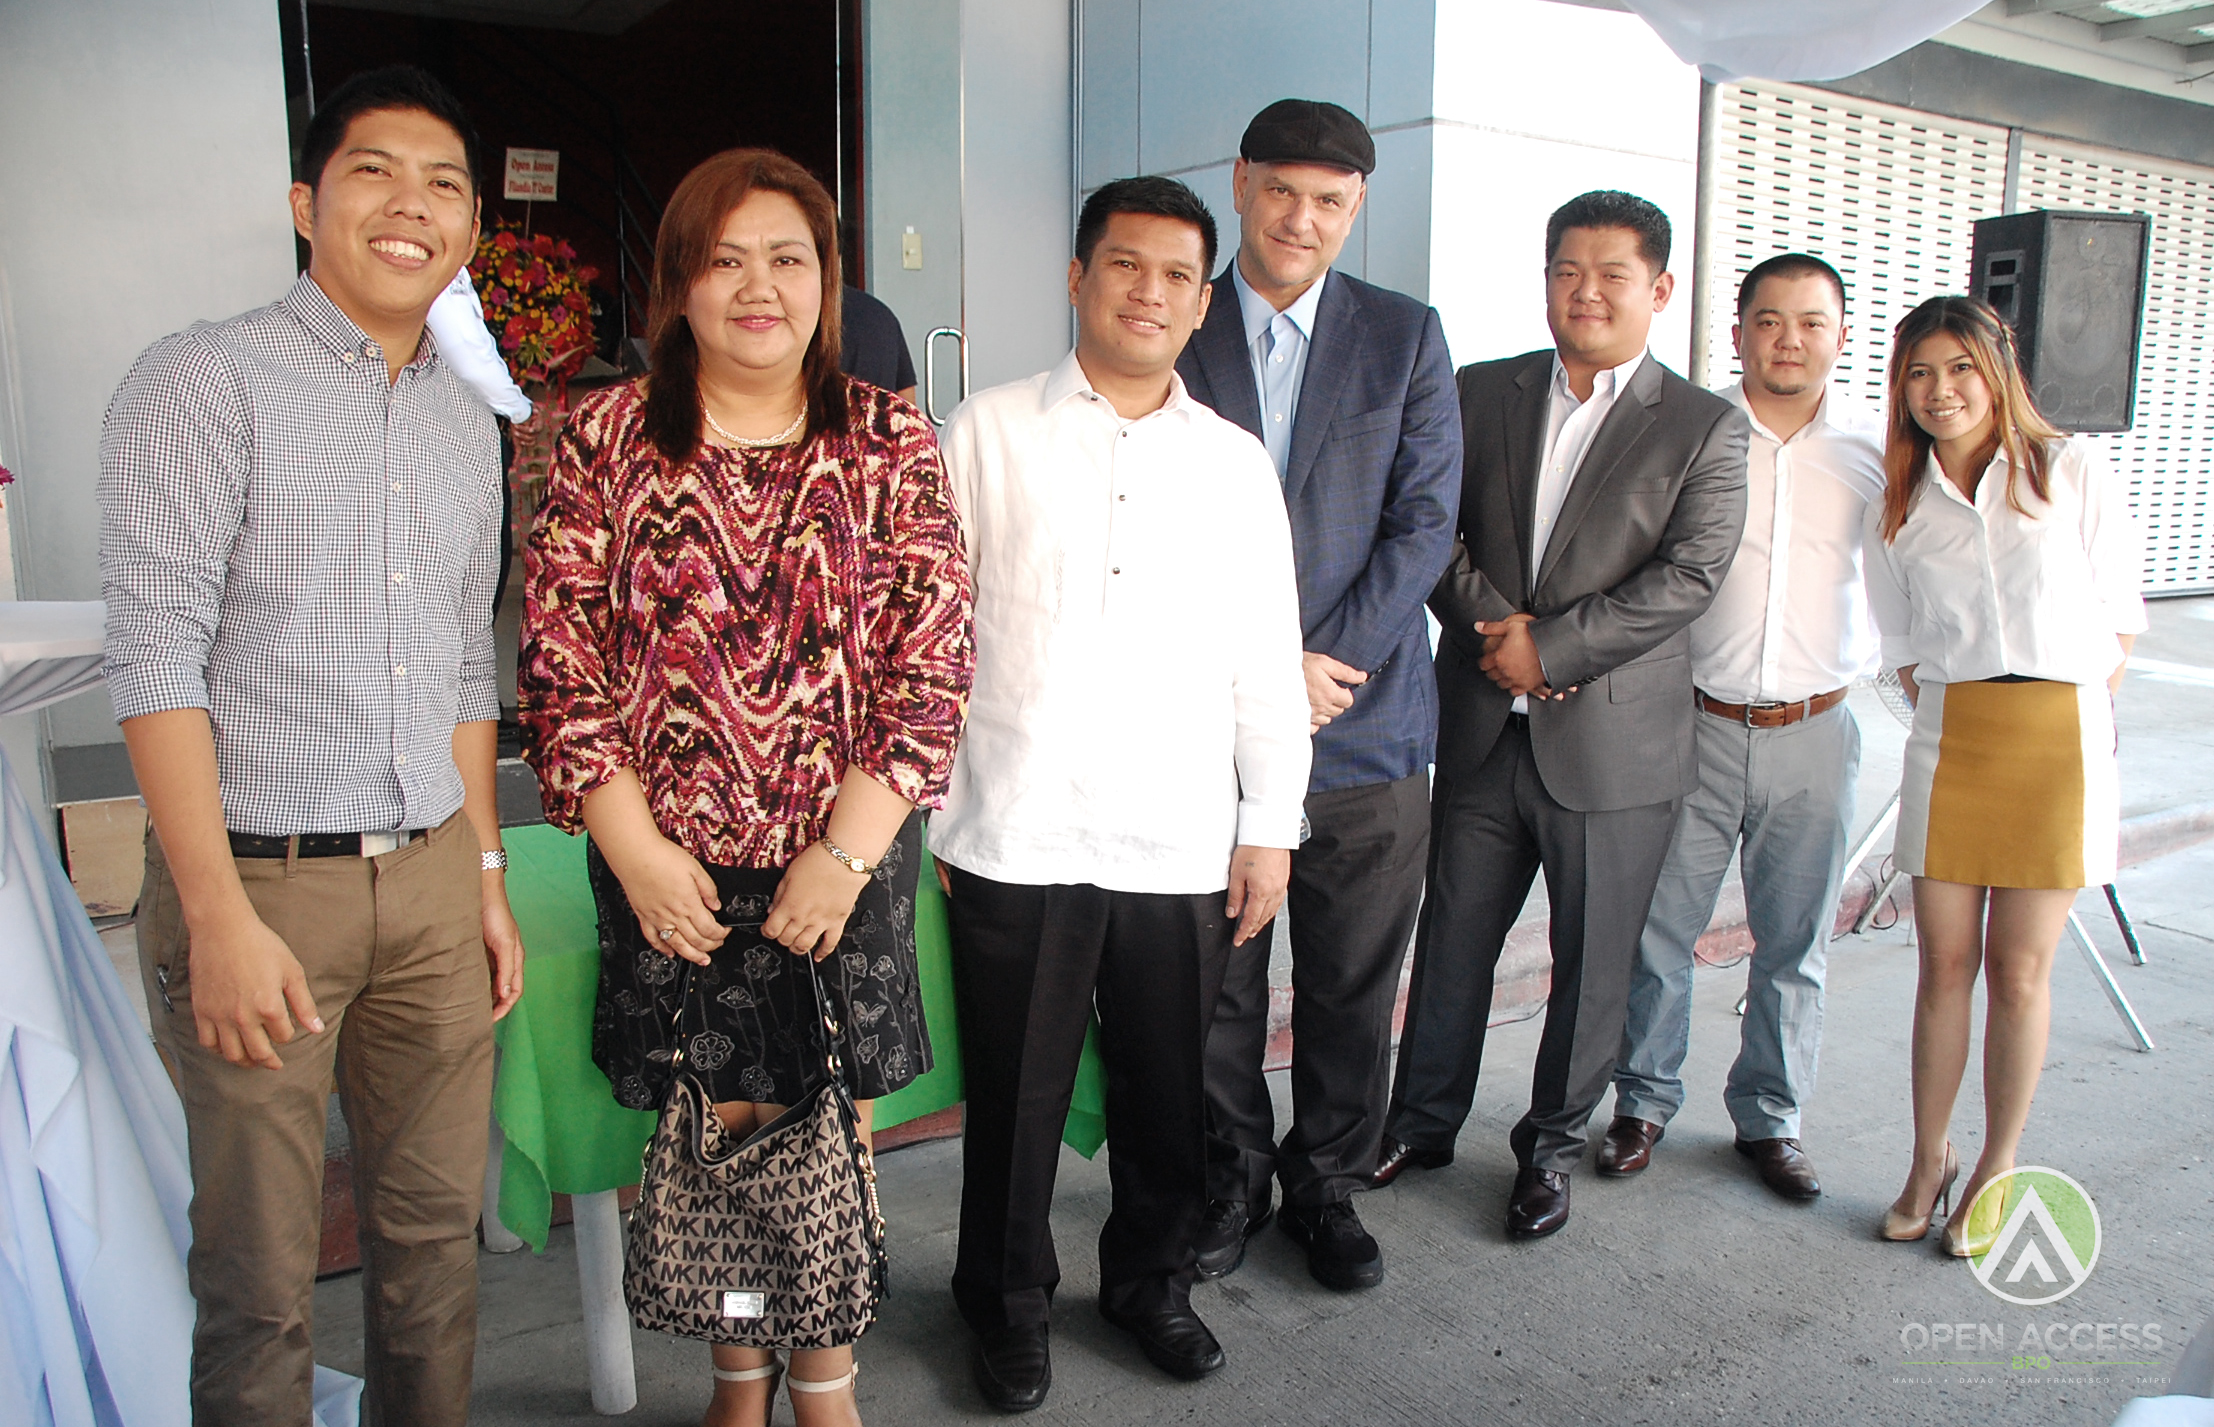 Open Access BPO Davao Ribbon Cutting Photo Op_01